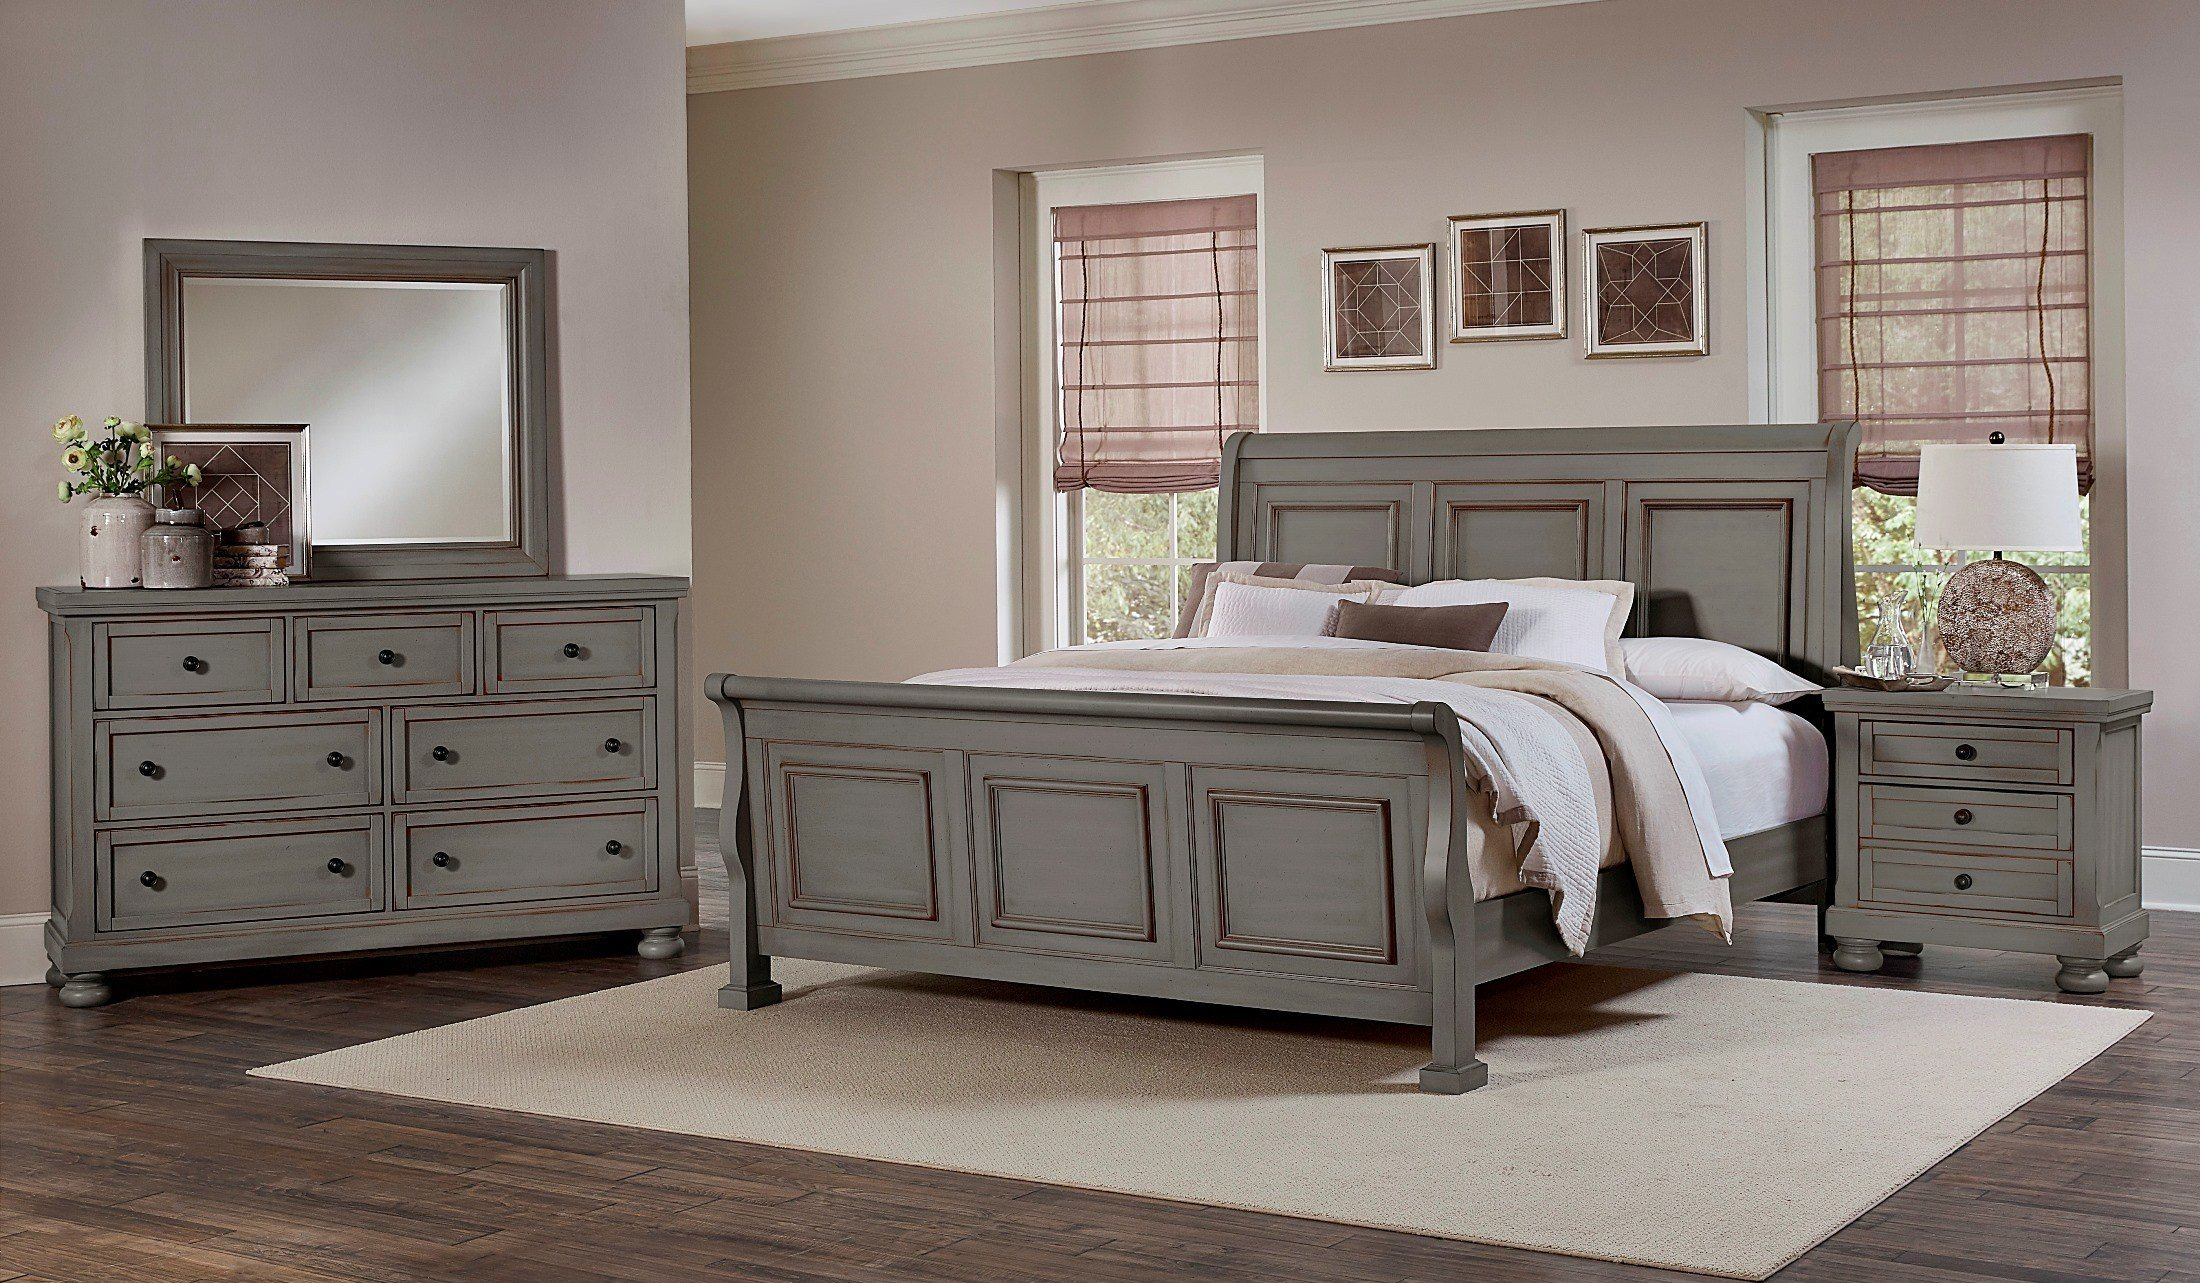 Best Reflections Antique Pewter Sleigh Bedroom Set 531 553 355 With Pictures